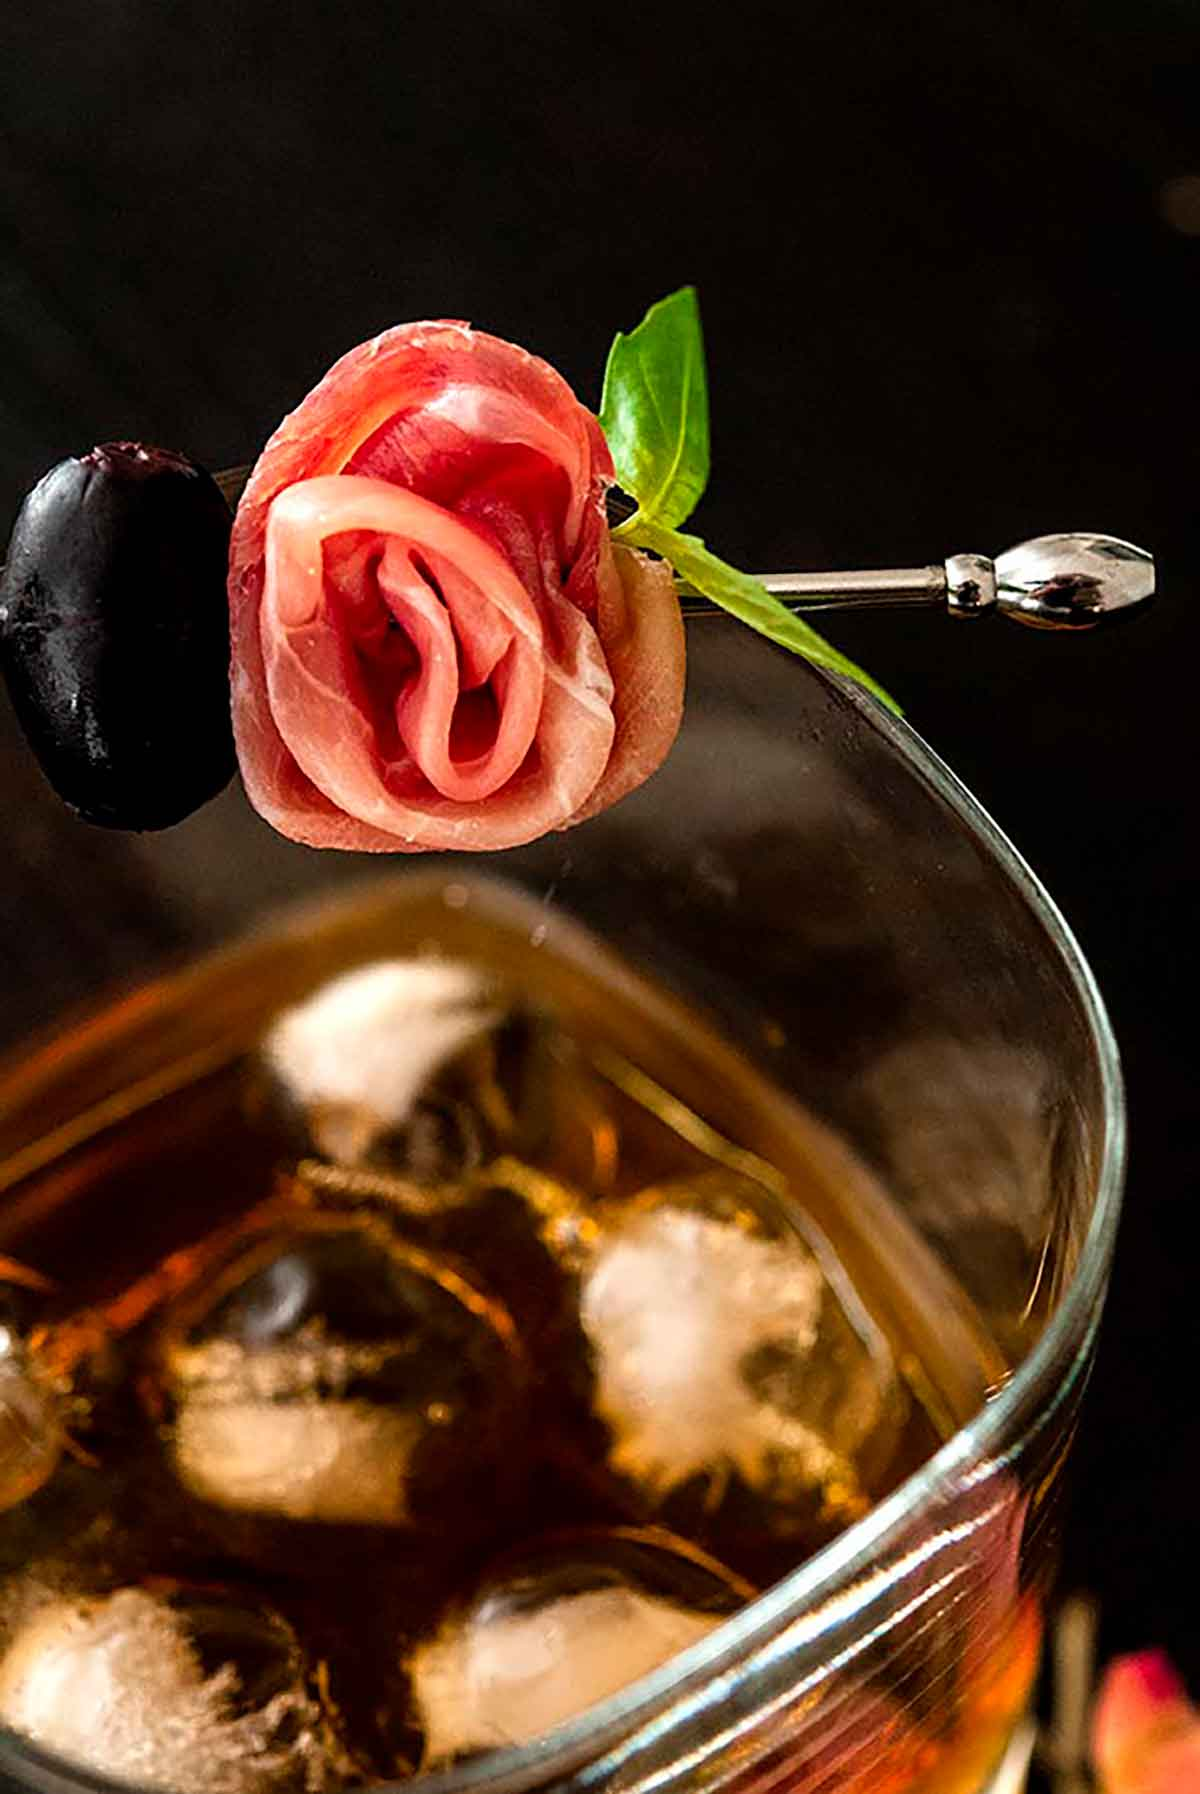 A prosciutto rose garnish on a glass filled with whisky and ice.